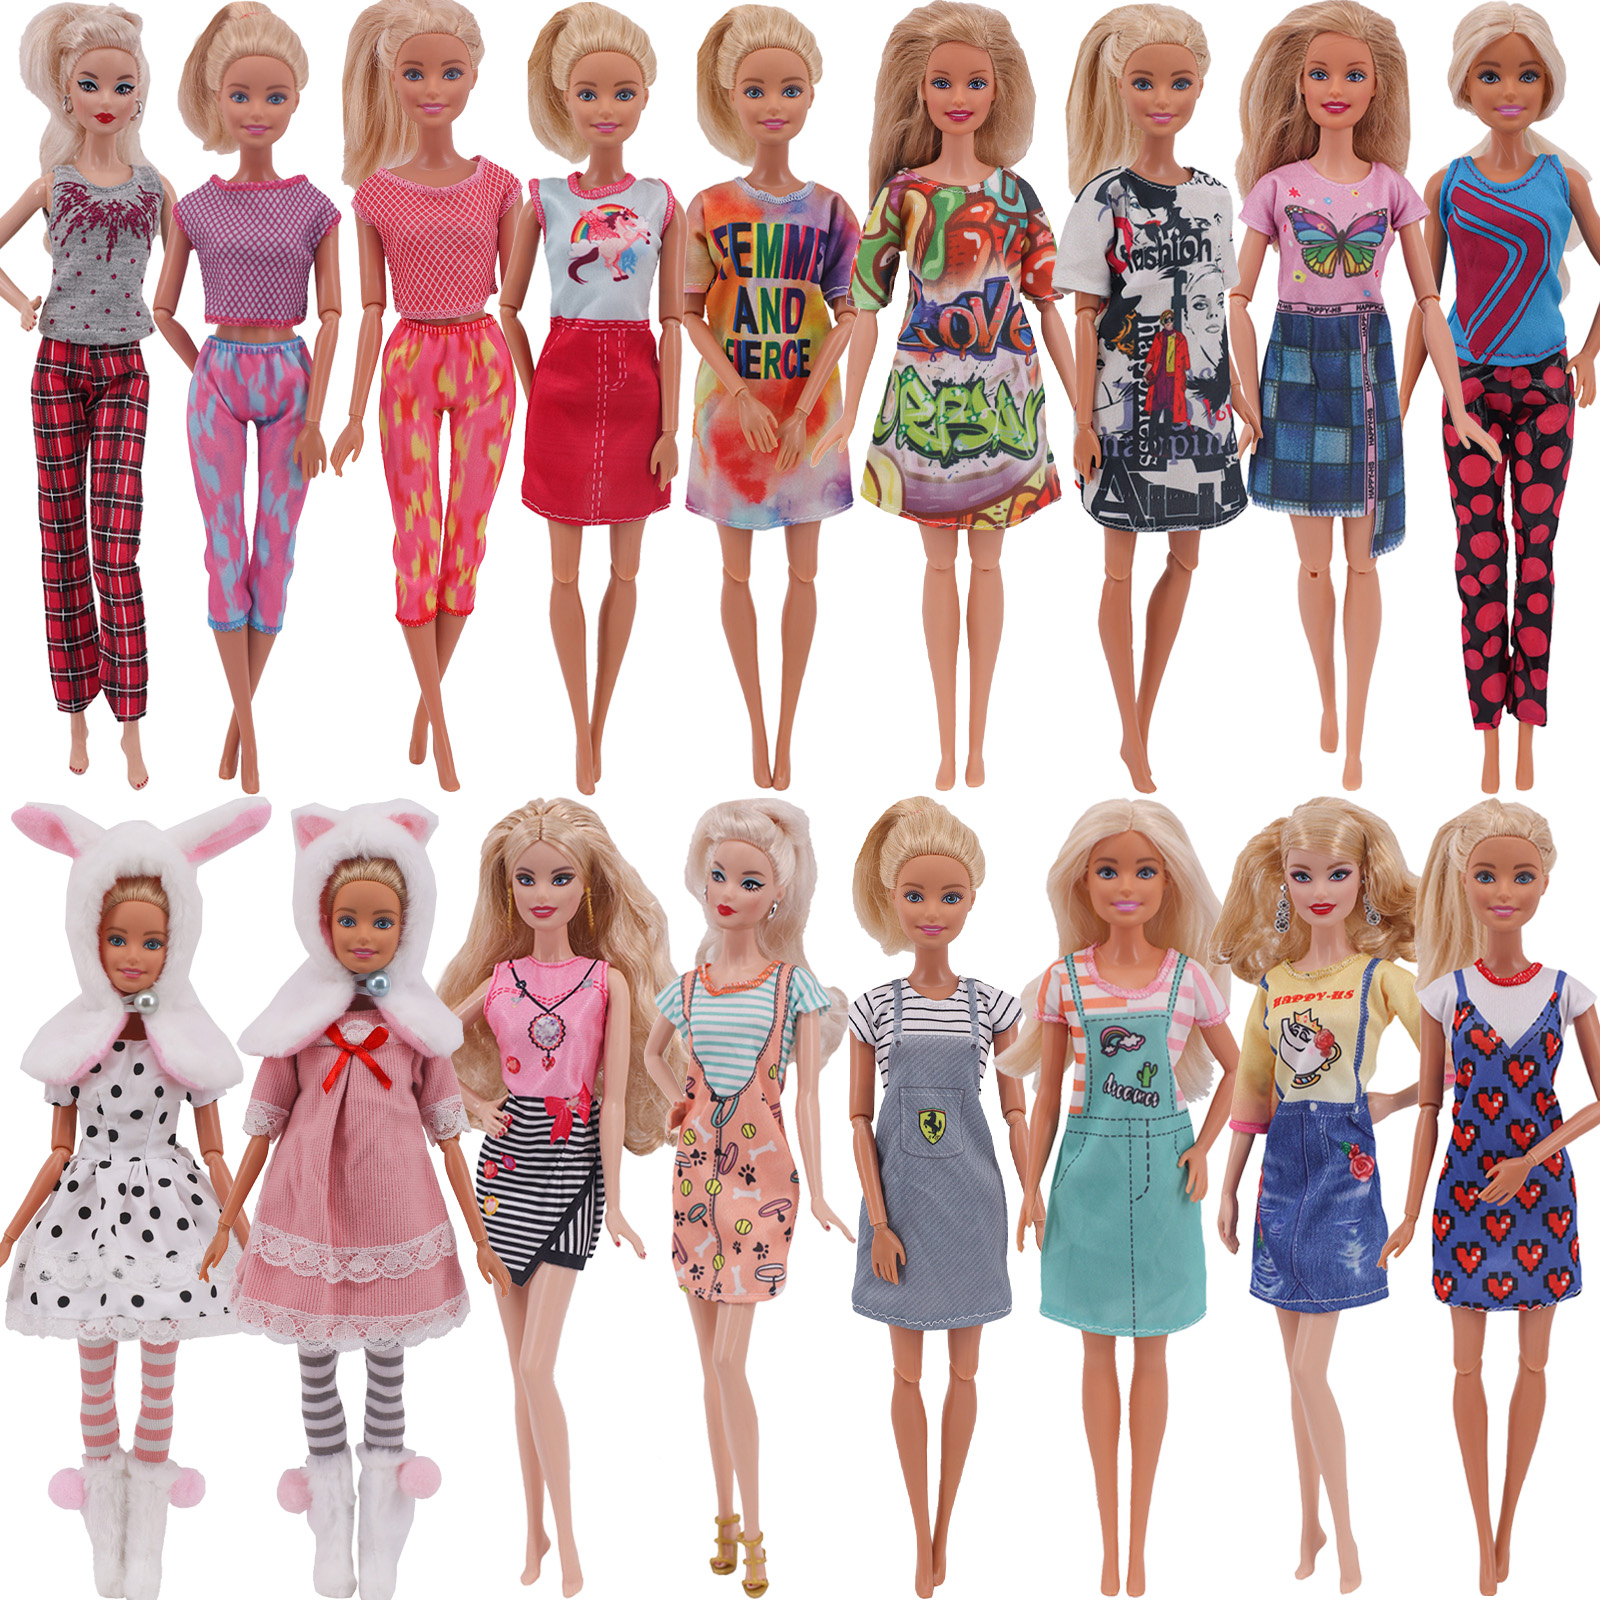 Barbies Doll New Clothes Everyday Wear Casual Dress Shirt Skirt Doll House For Barbie Doll Clothing accessories 5G JJ